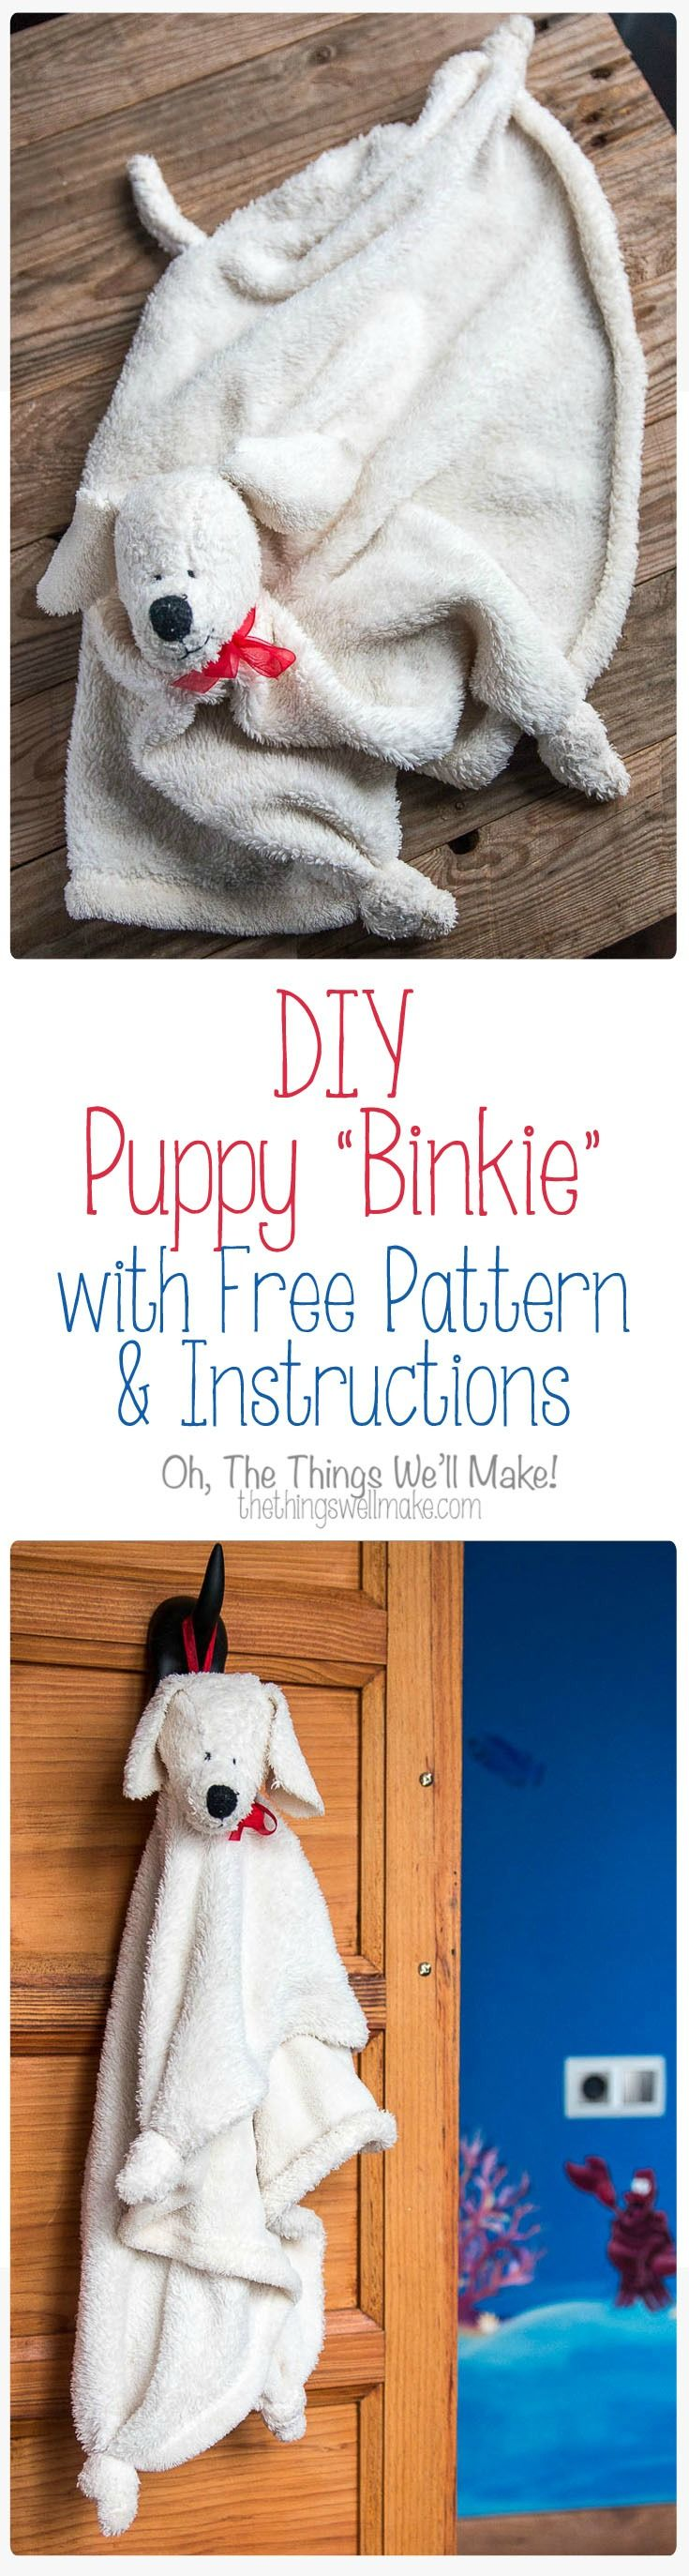 This super cute baby binkie or security blanket looks like a puppy. It isn't difficult to sew, and comes with a free pattern and instructions.